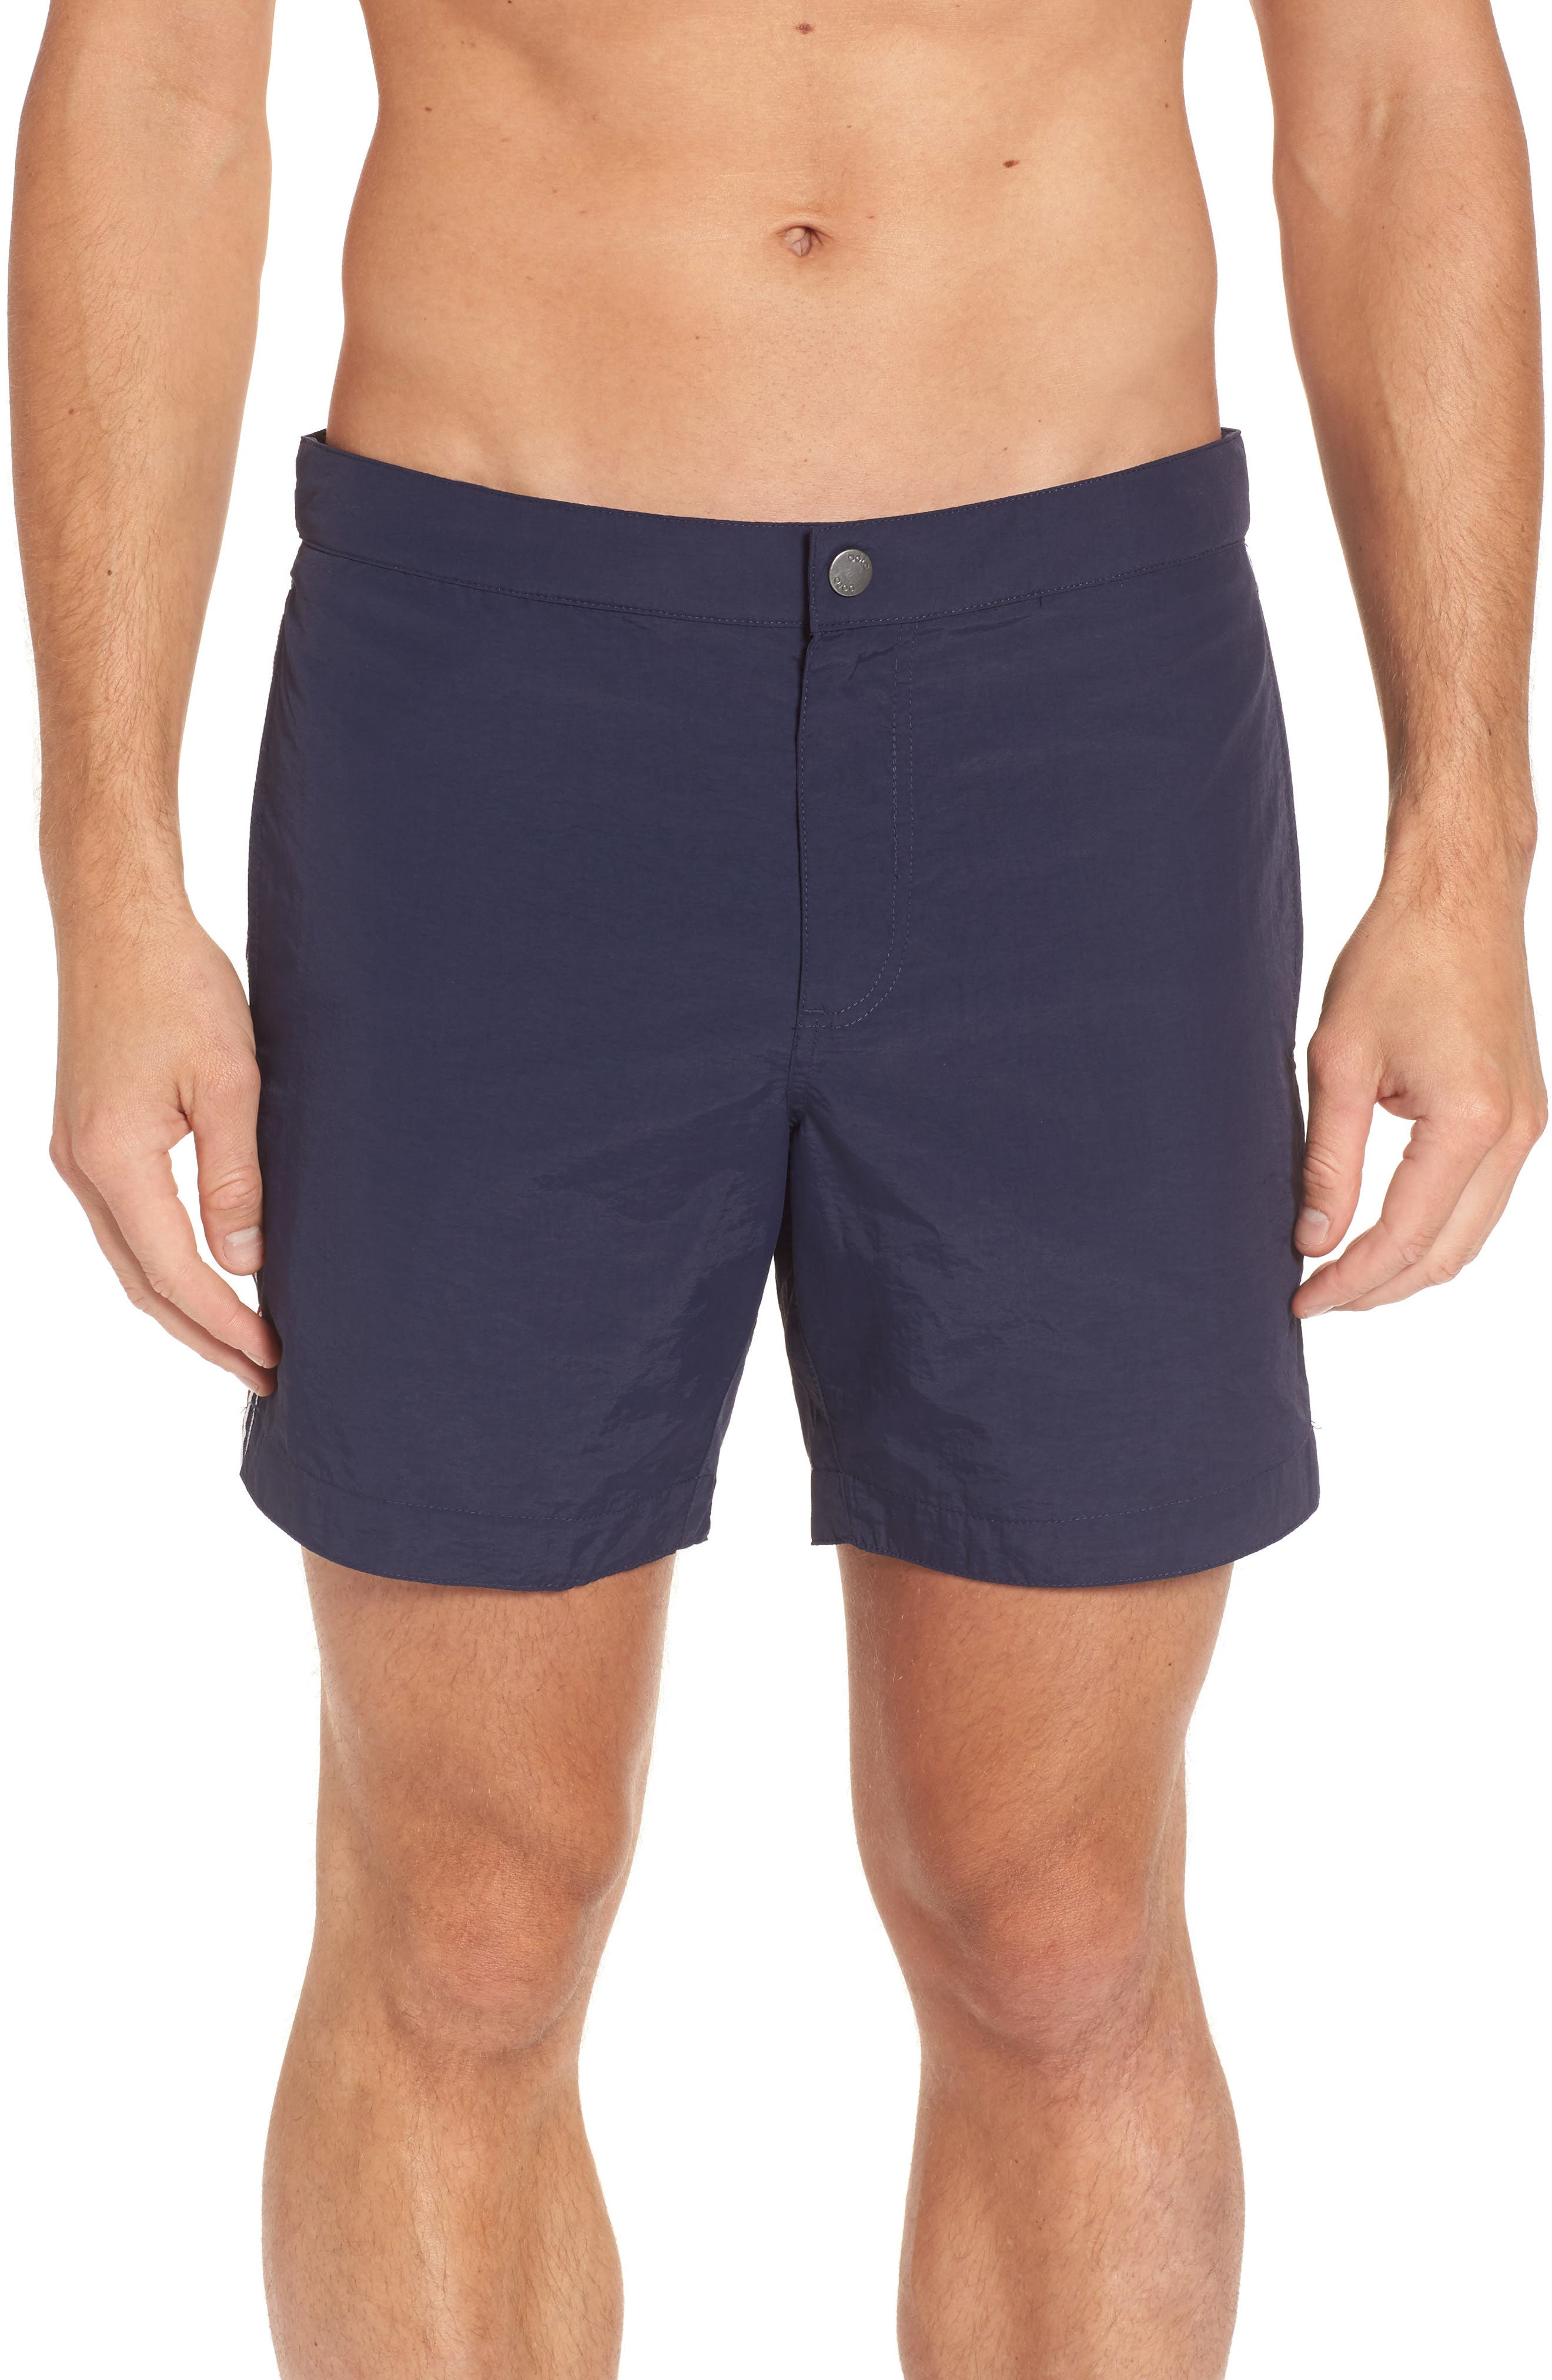 Aruba Tailored Fit French Stripe Swim Trunks,                             Main thumbnail 1, color,                             Navy French Stripes